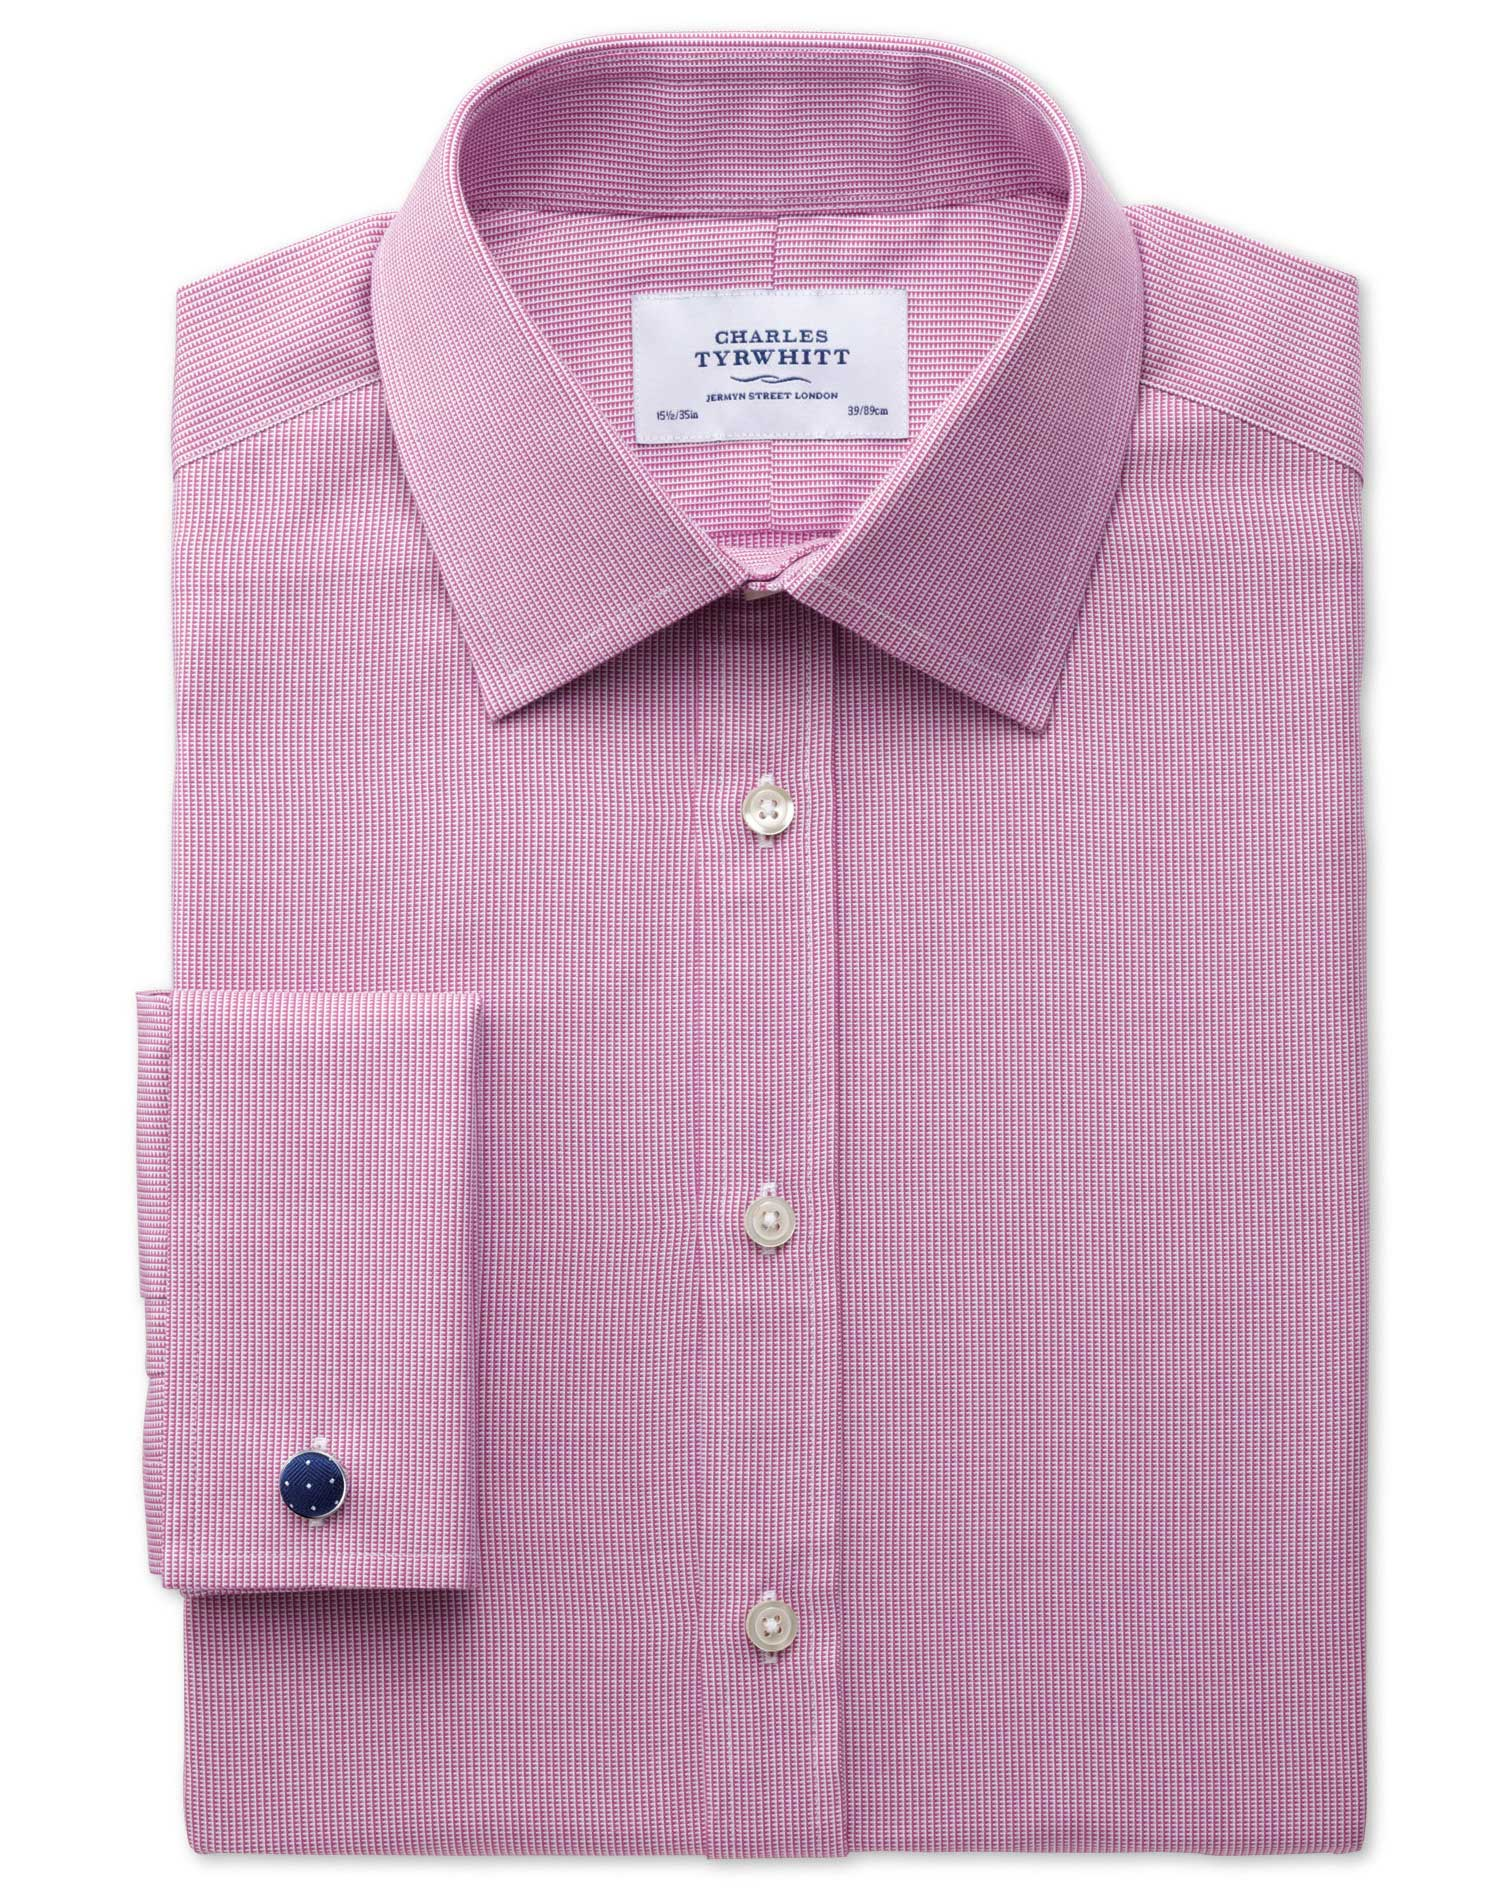 Slim Fit Oxford Magenta Cotton Formal Shirt Double Cuff Size 17.5/34 by Charles Tyrwhitt